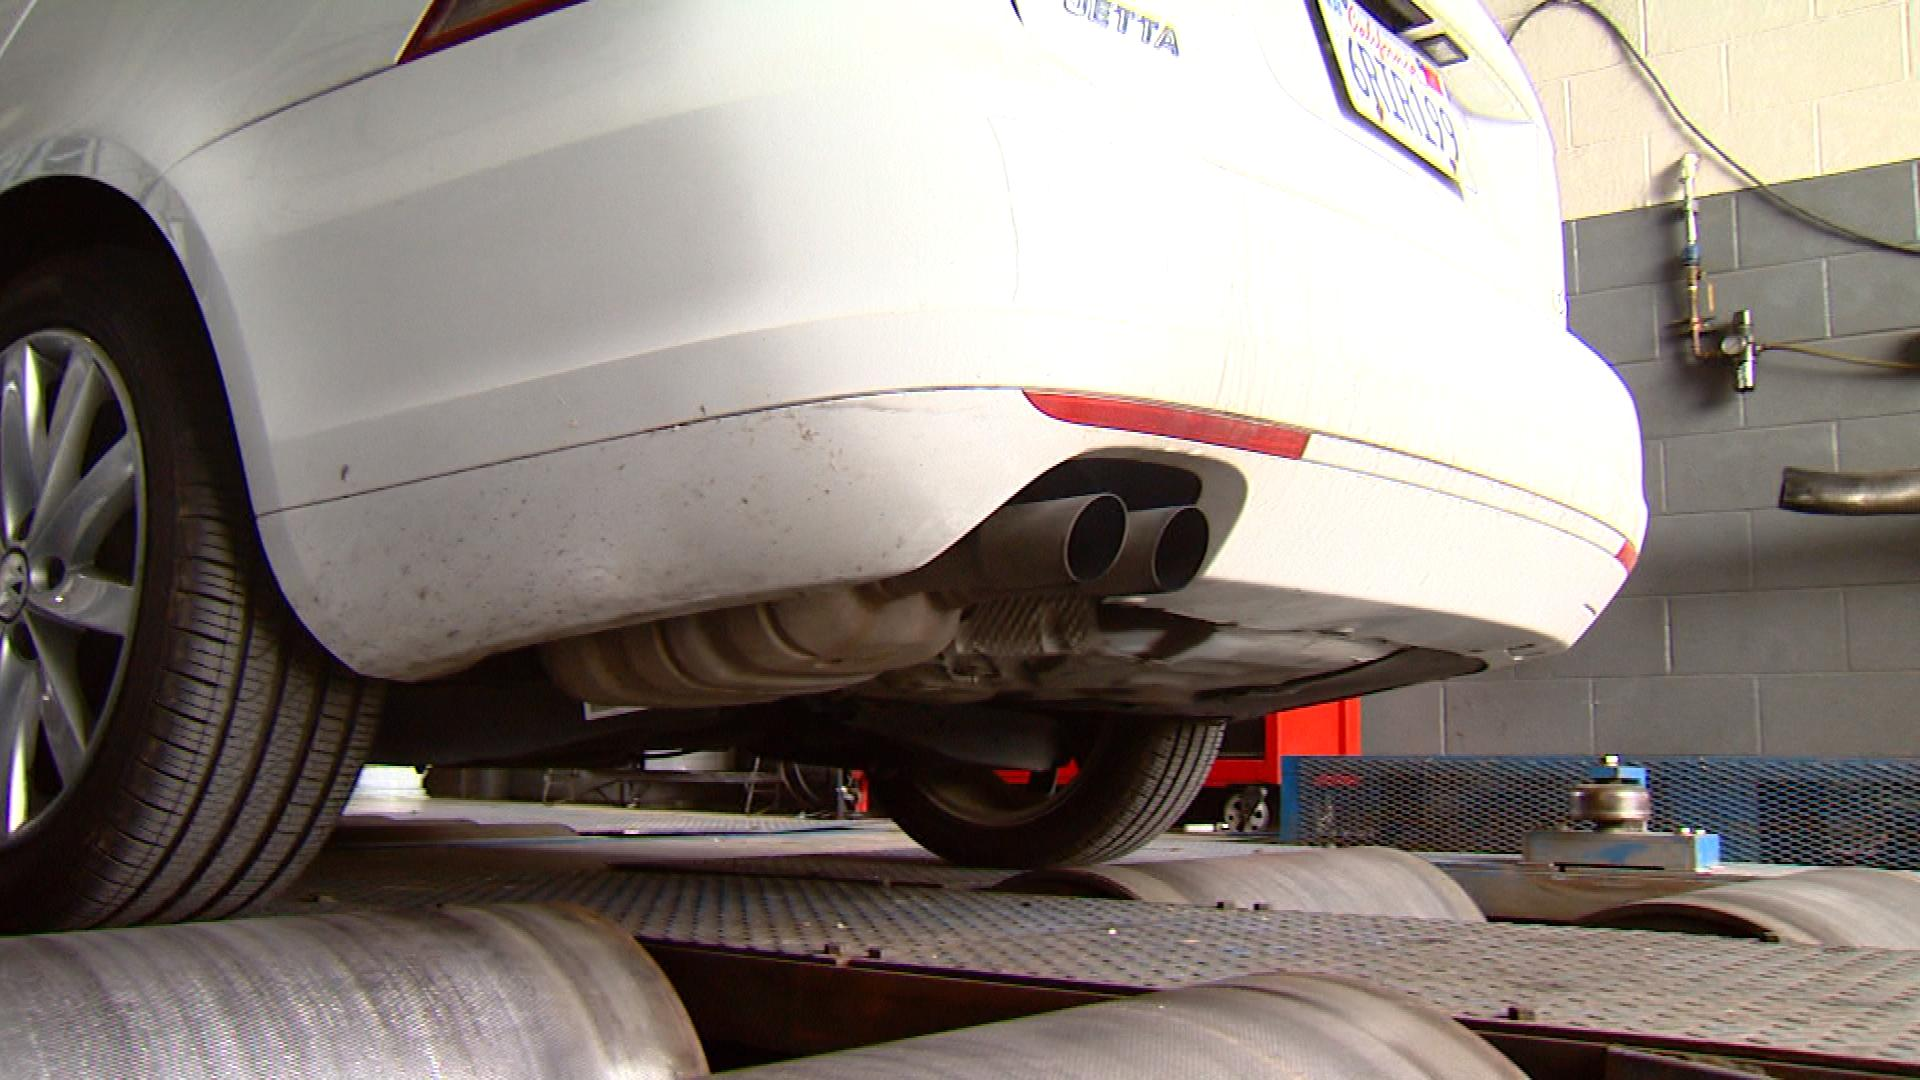 The Jetta being tested with State of Colorado testing equipment (credit: CBS)